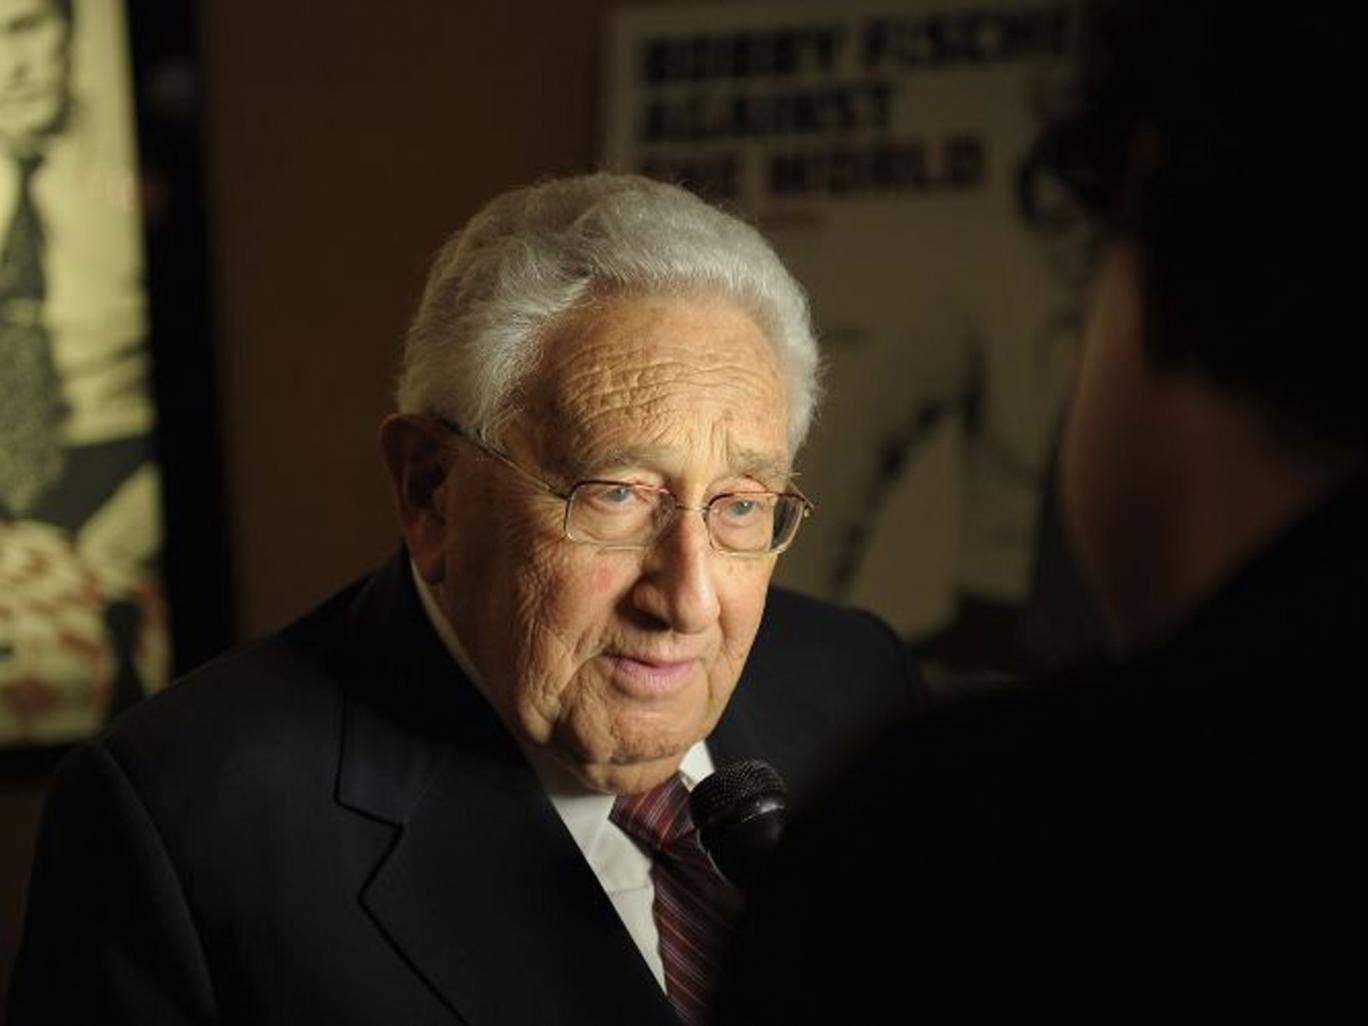 At the age of 90, Kissinger is currently advising the Obama administration on dealing with Russia